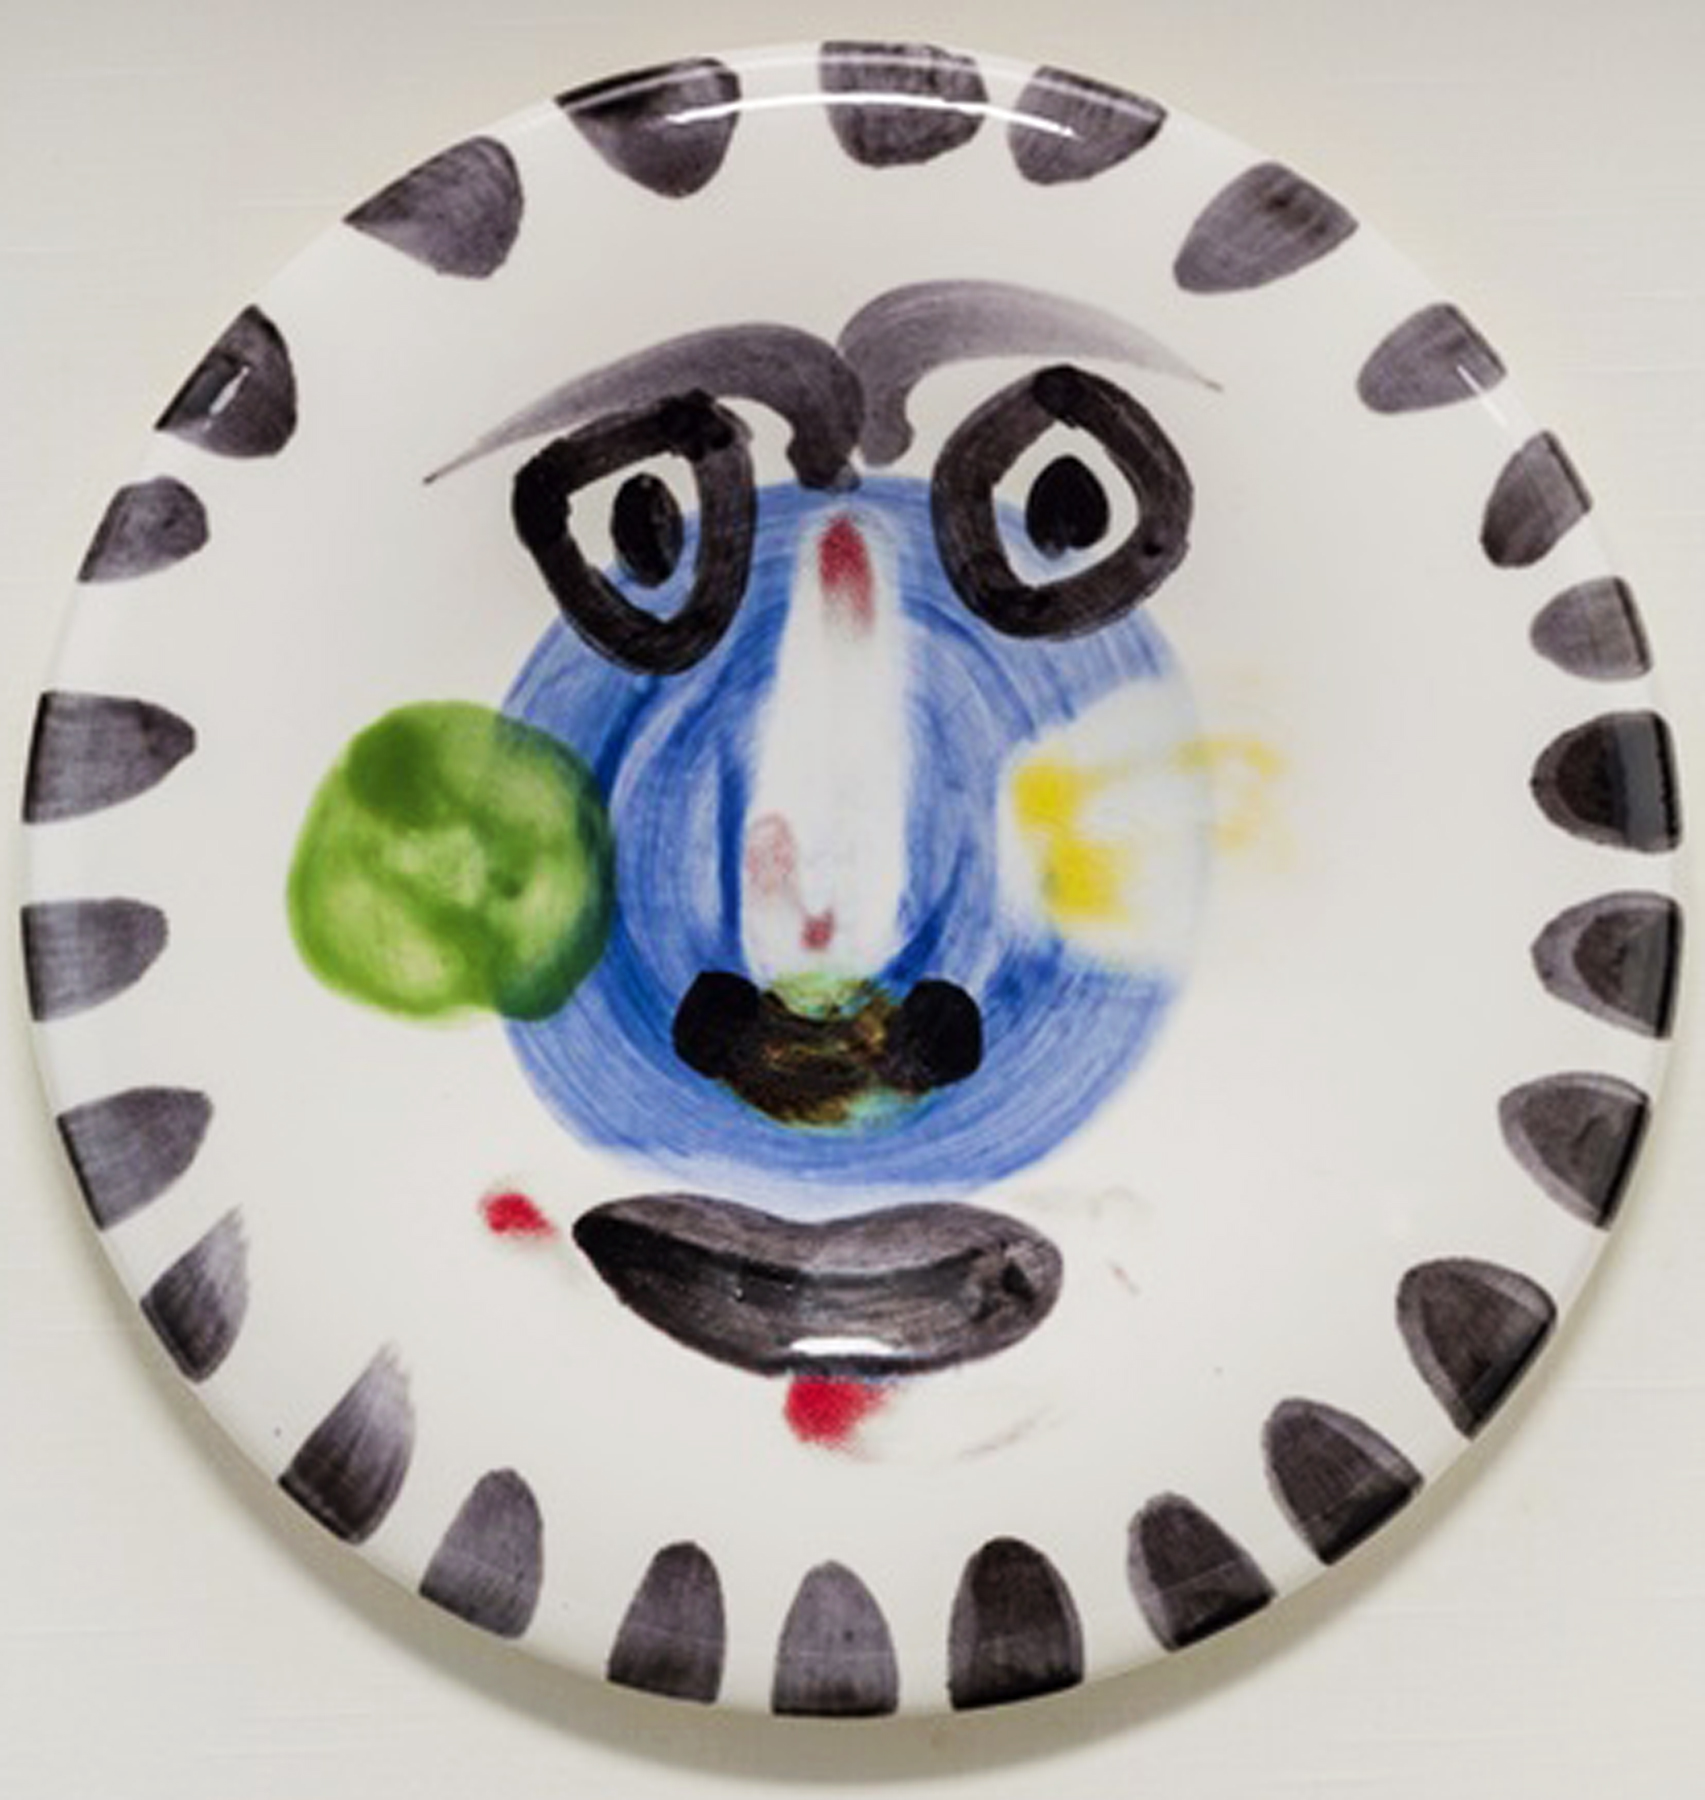 Visage No. 202 Ceramic Plate 193 20 in